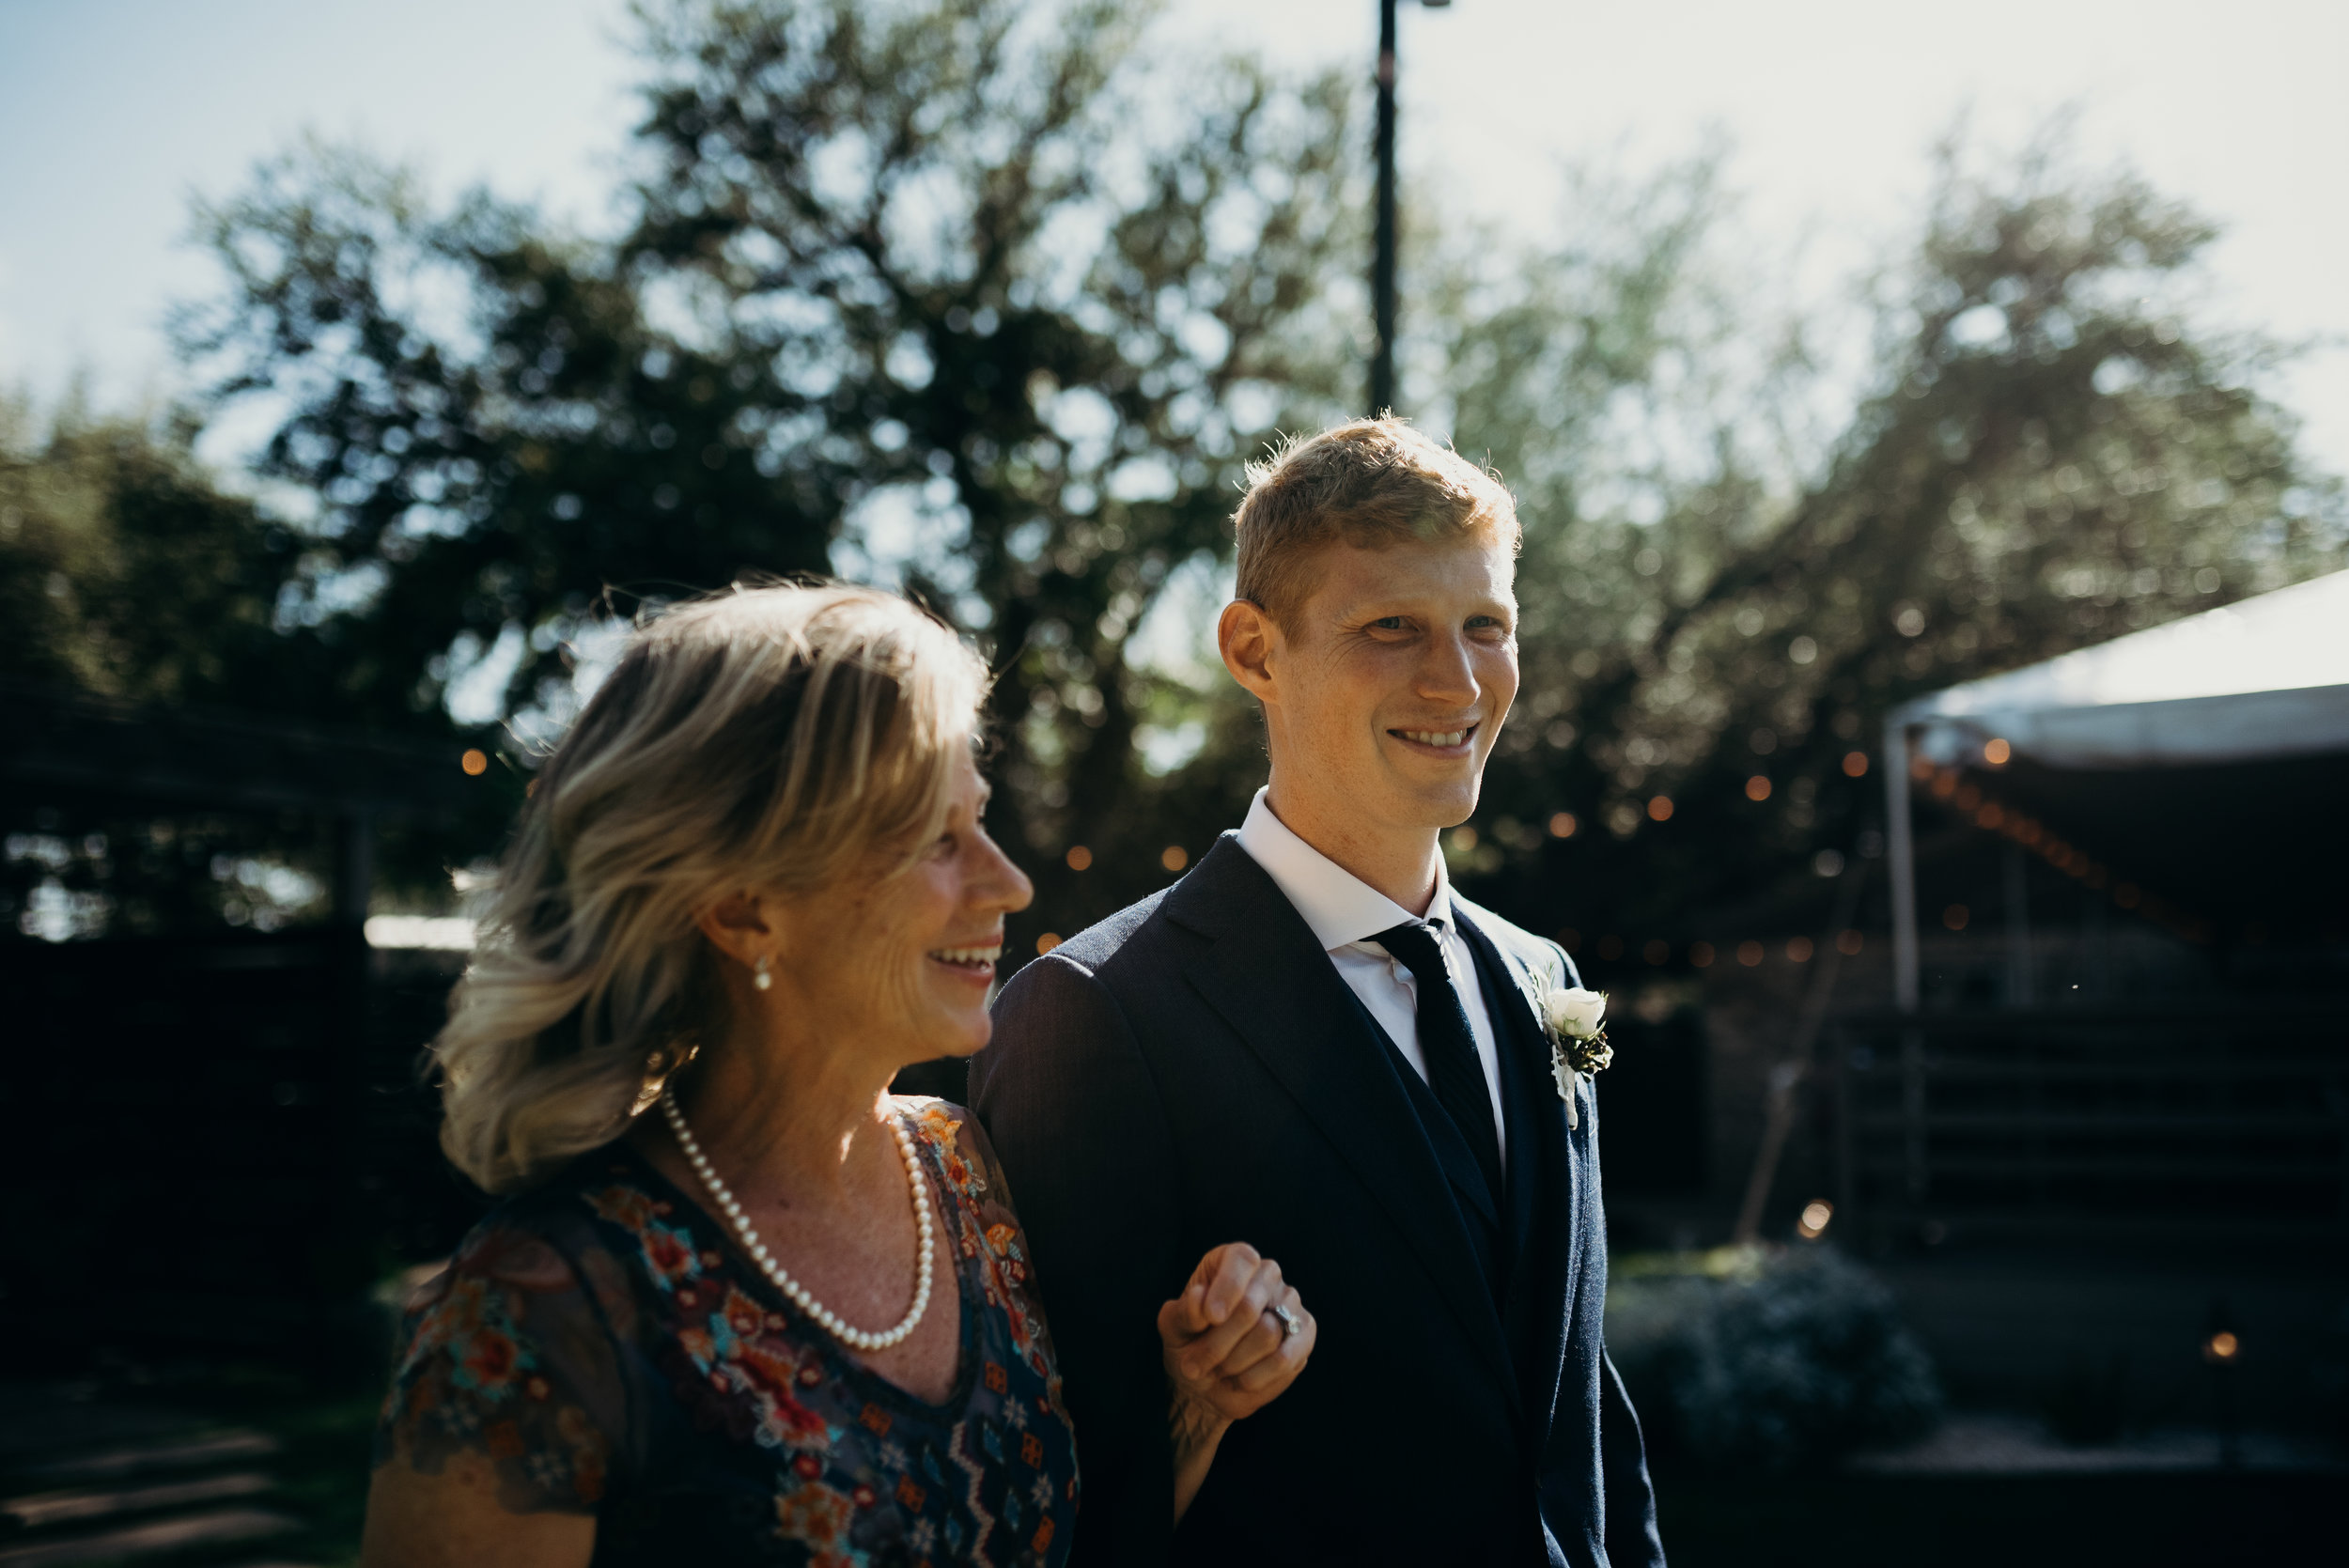 Megan+Sam Wedding-290.JPG